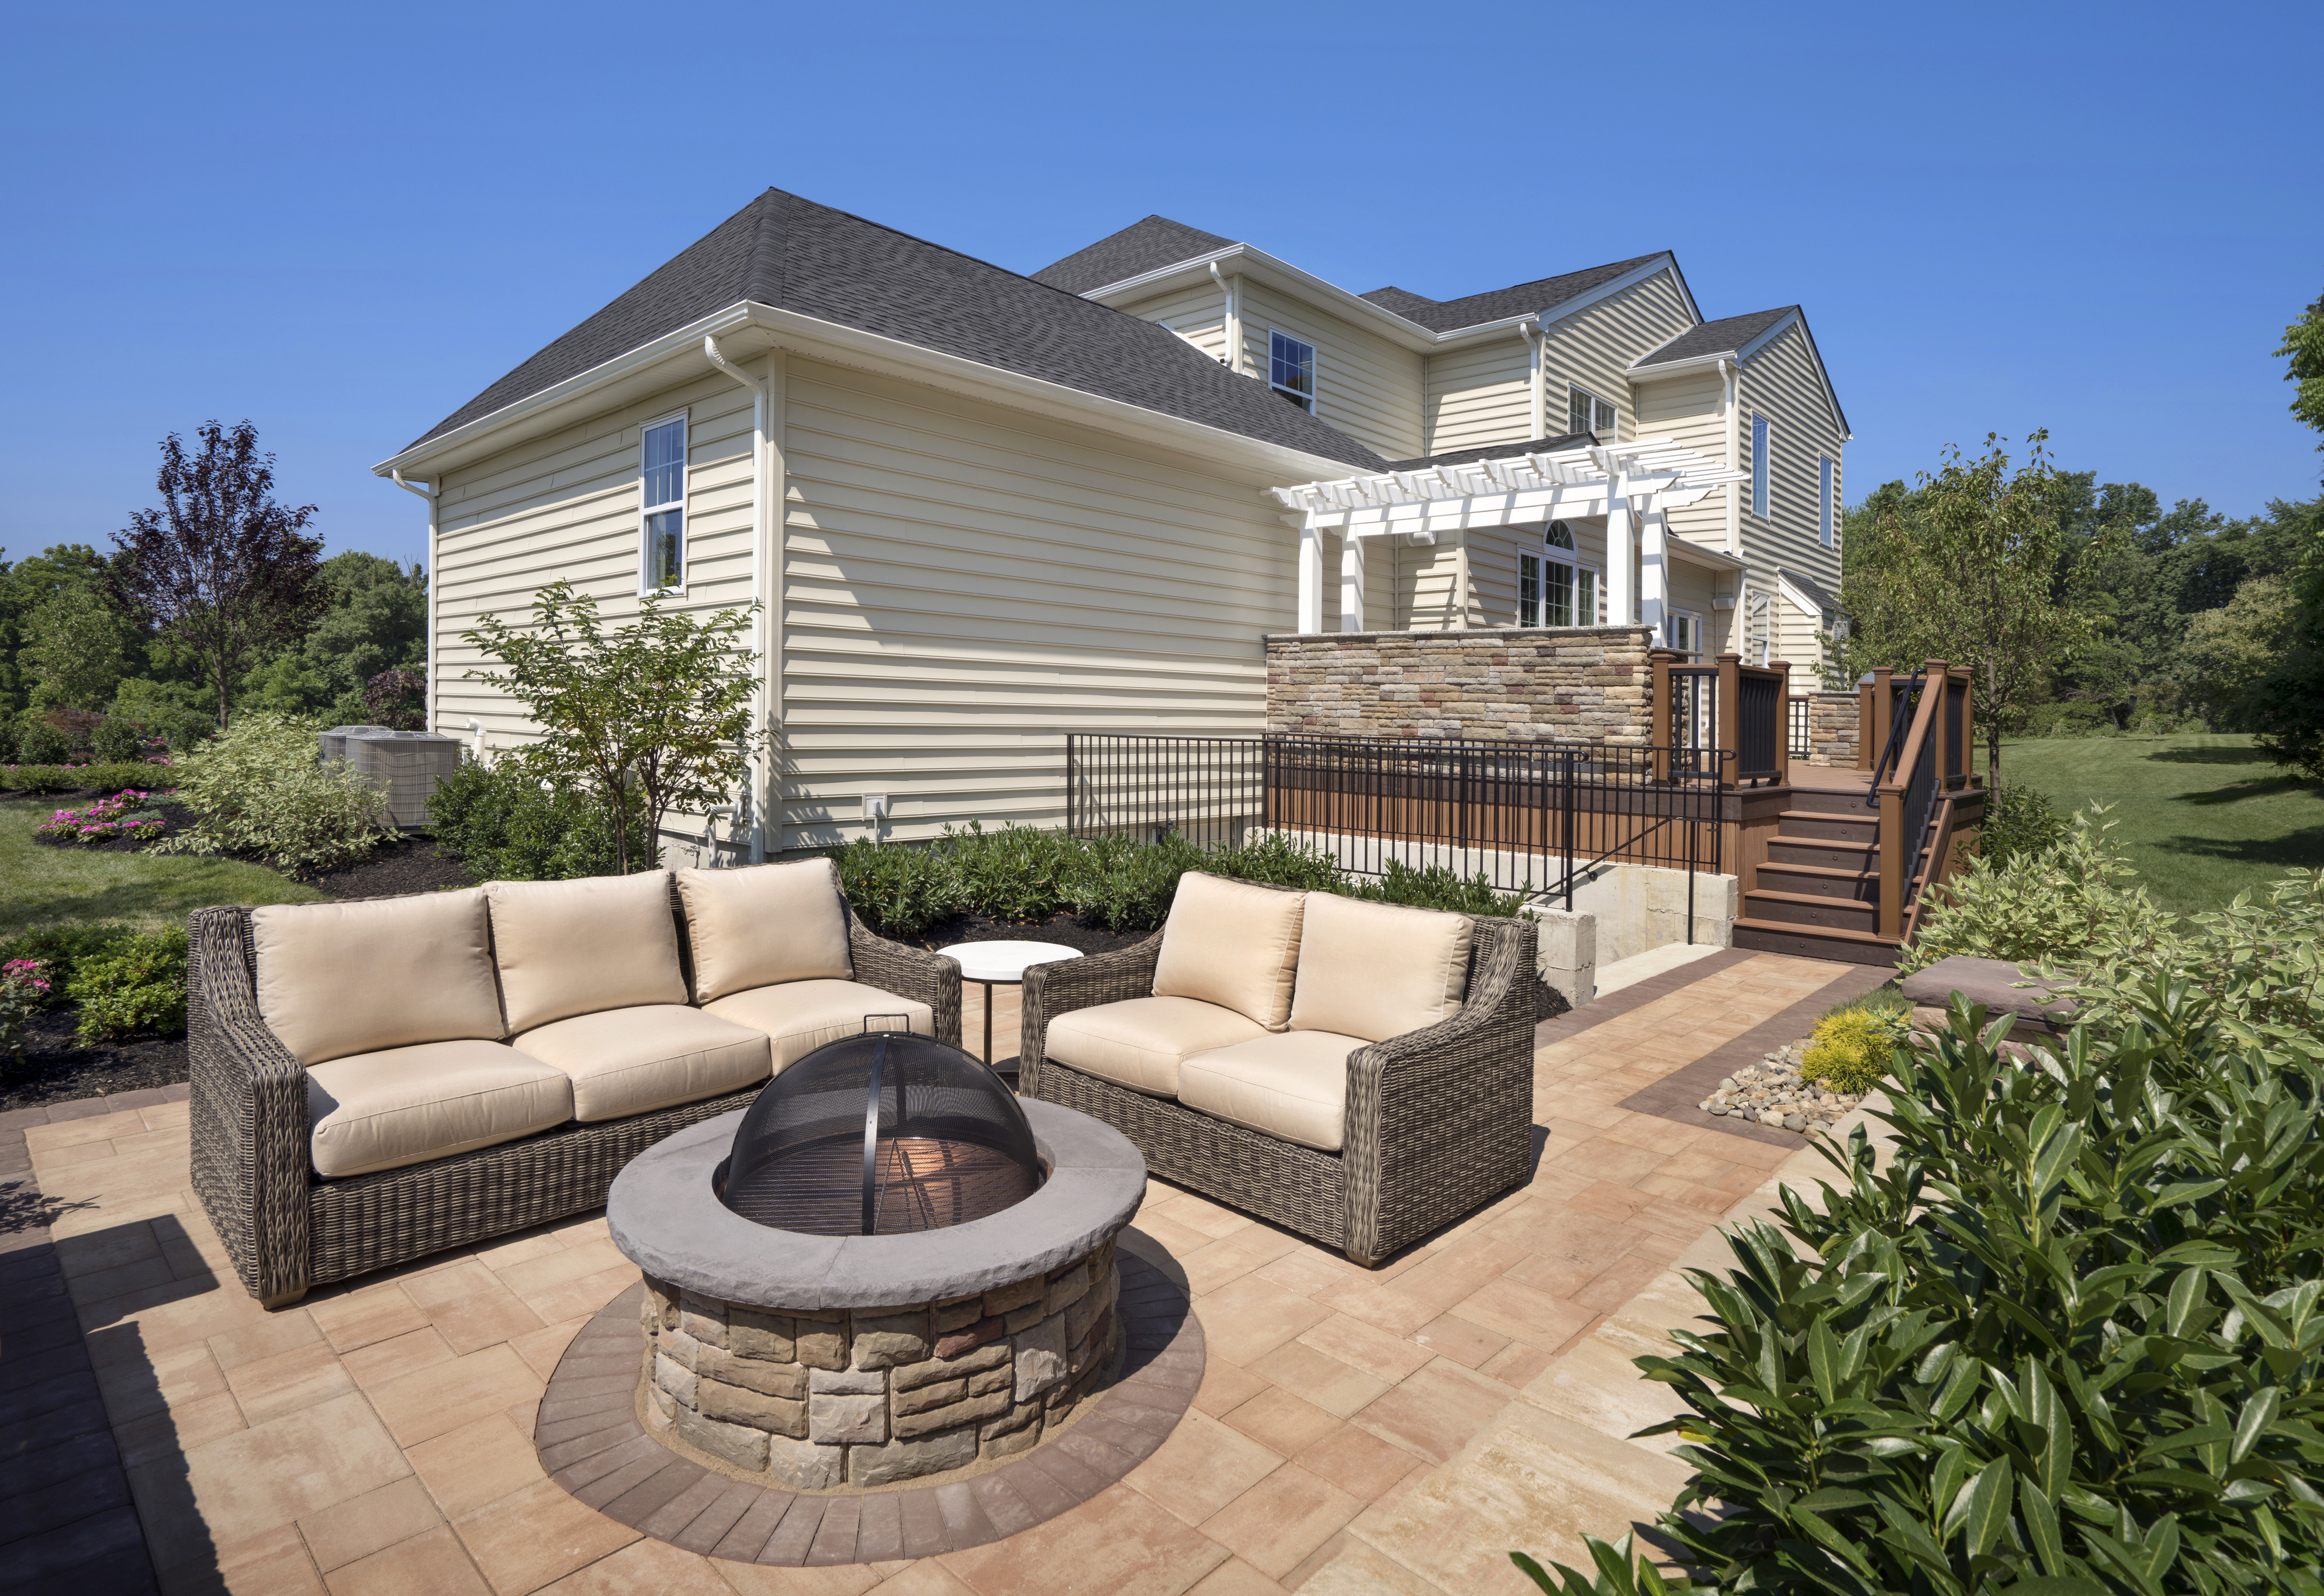 Outdoor living space with seating and a fire pit in a suburban home's backyard.